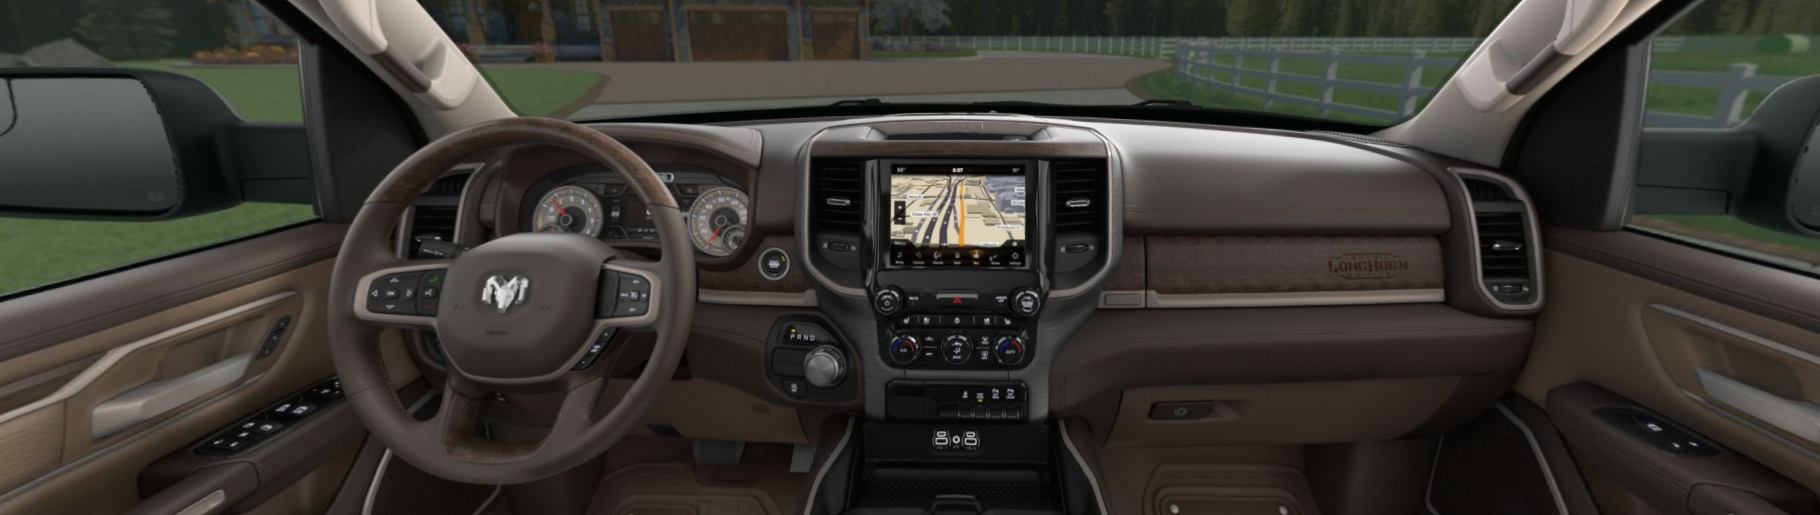 2020 Ram 1500 Longhorn Front Interior Dash Picture